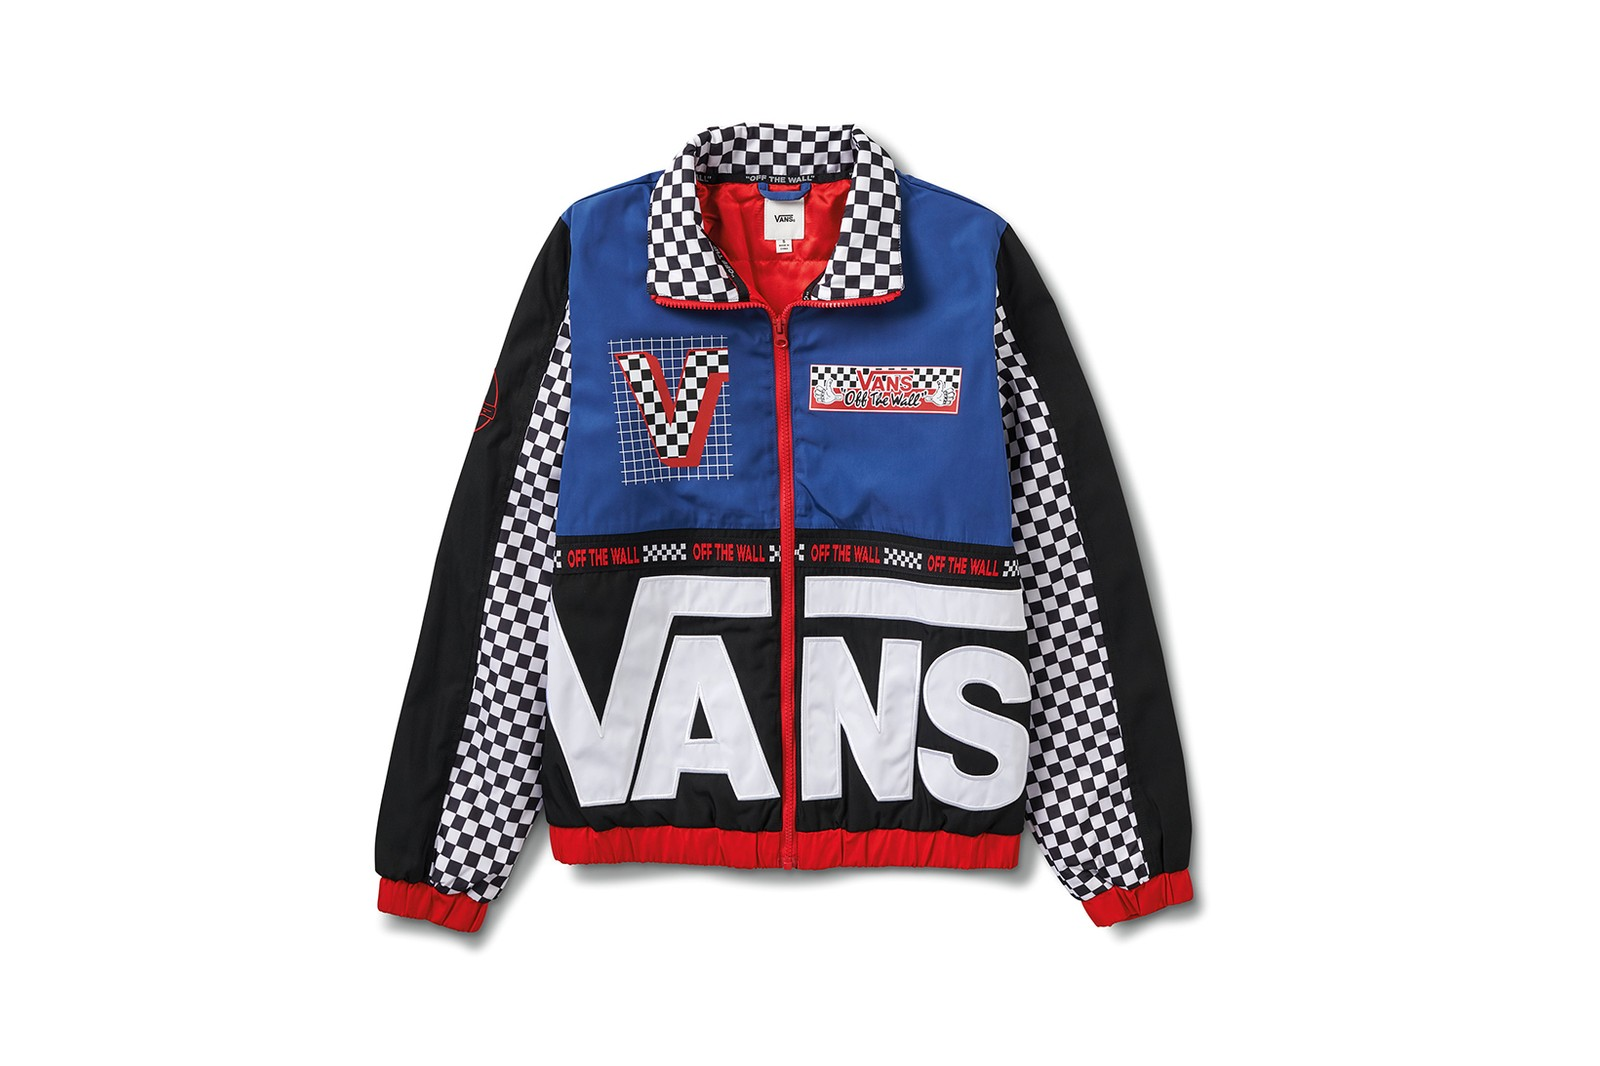 vans bmx anniversary collaboration men women sk8 hi reissue era sneakers apparel jackets pants backpacks bags collection